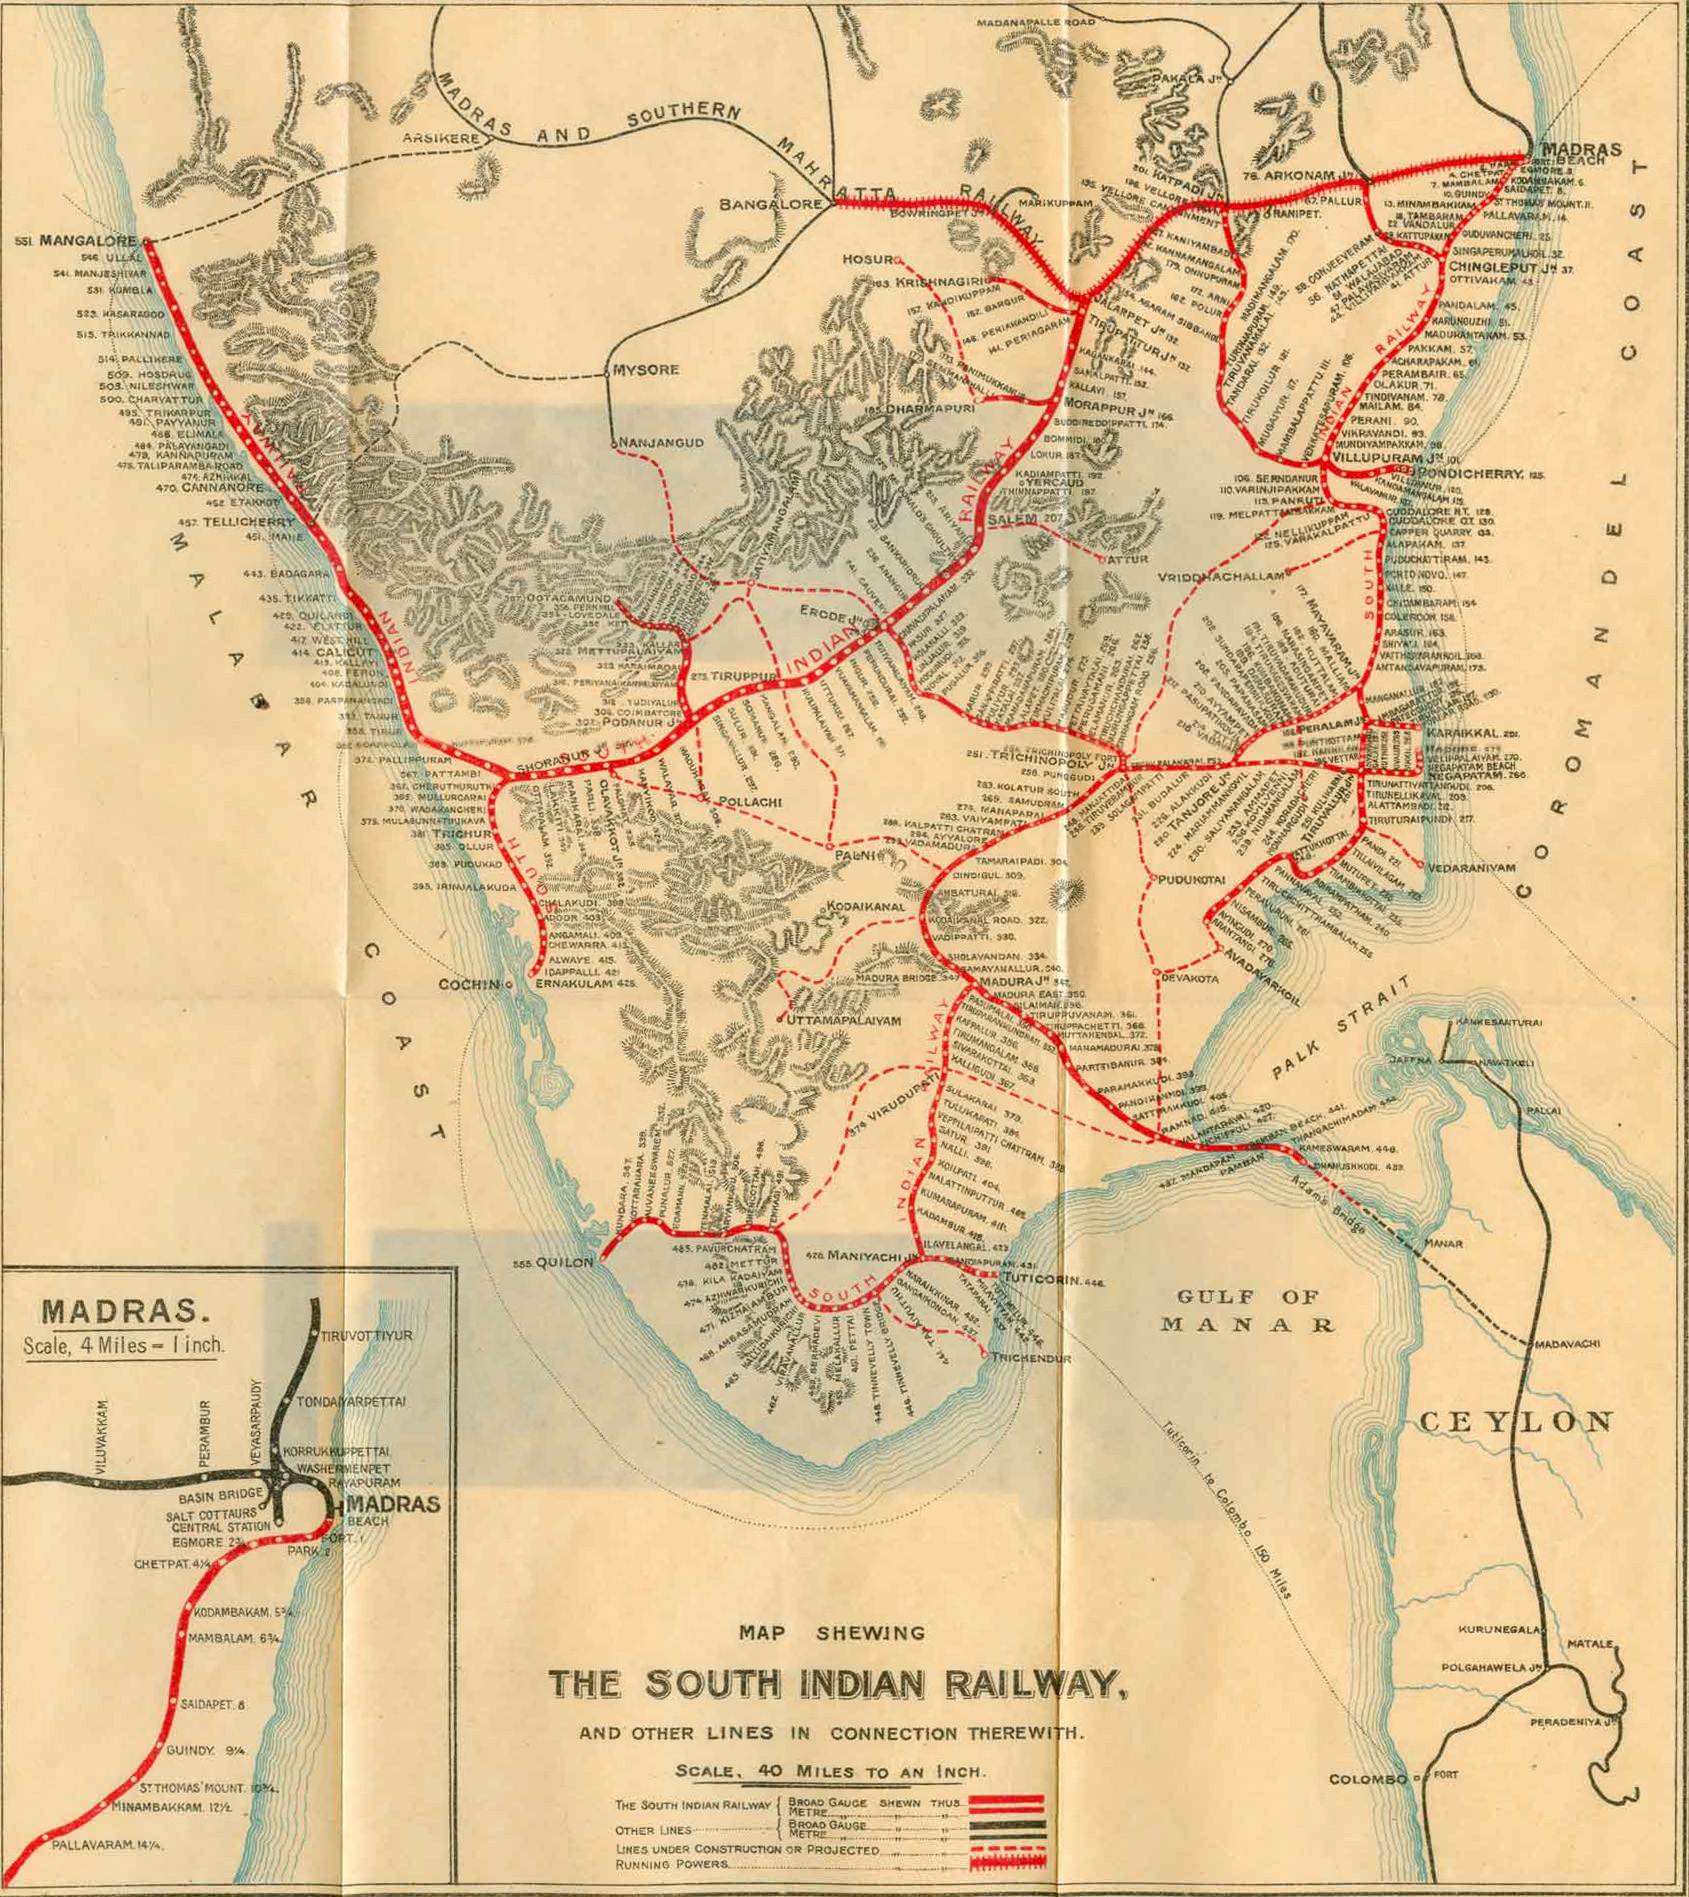 South India Railway Map File:60The South Indian Railway.   Wikimedia Commons